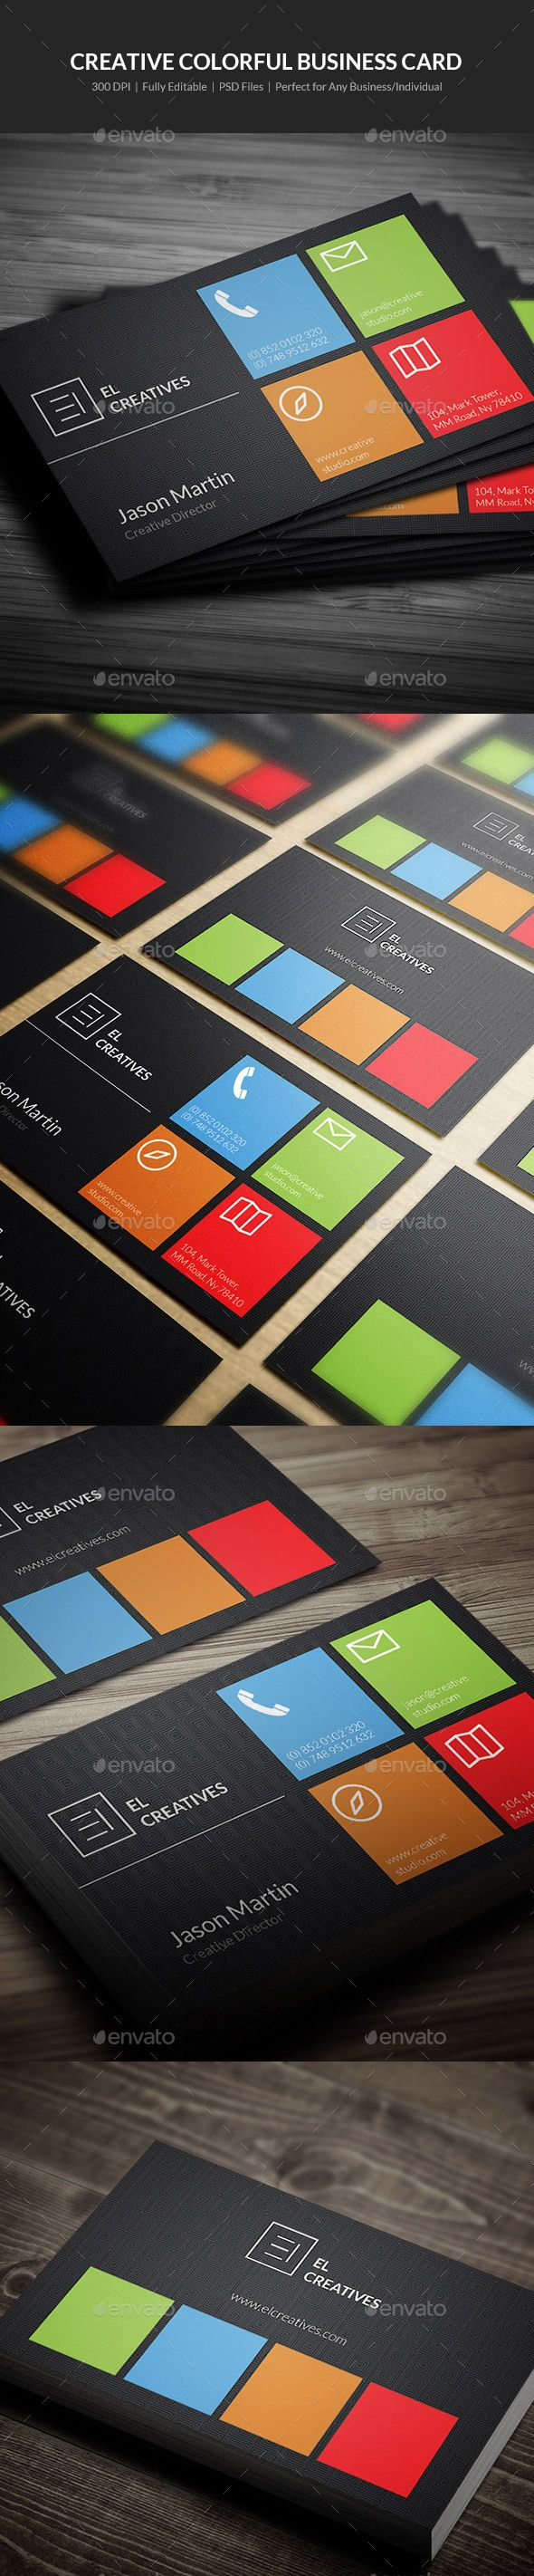 Creative Colorful Business Card Template PSD #visitcard #design Download: http://graphicriver.net/item/creative-colorful-business-card-02/13198500?ref=ksioks